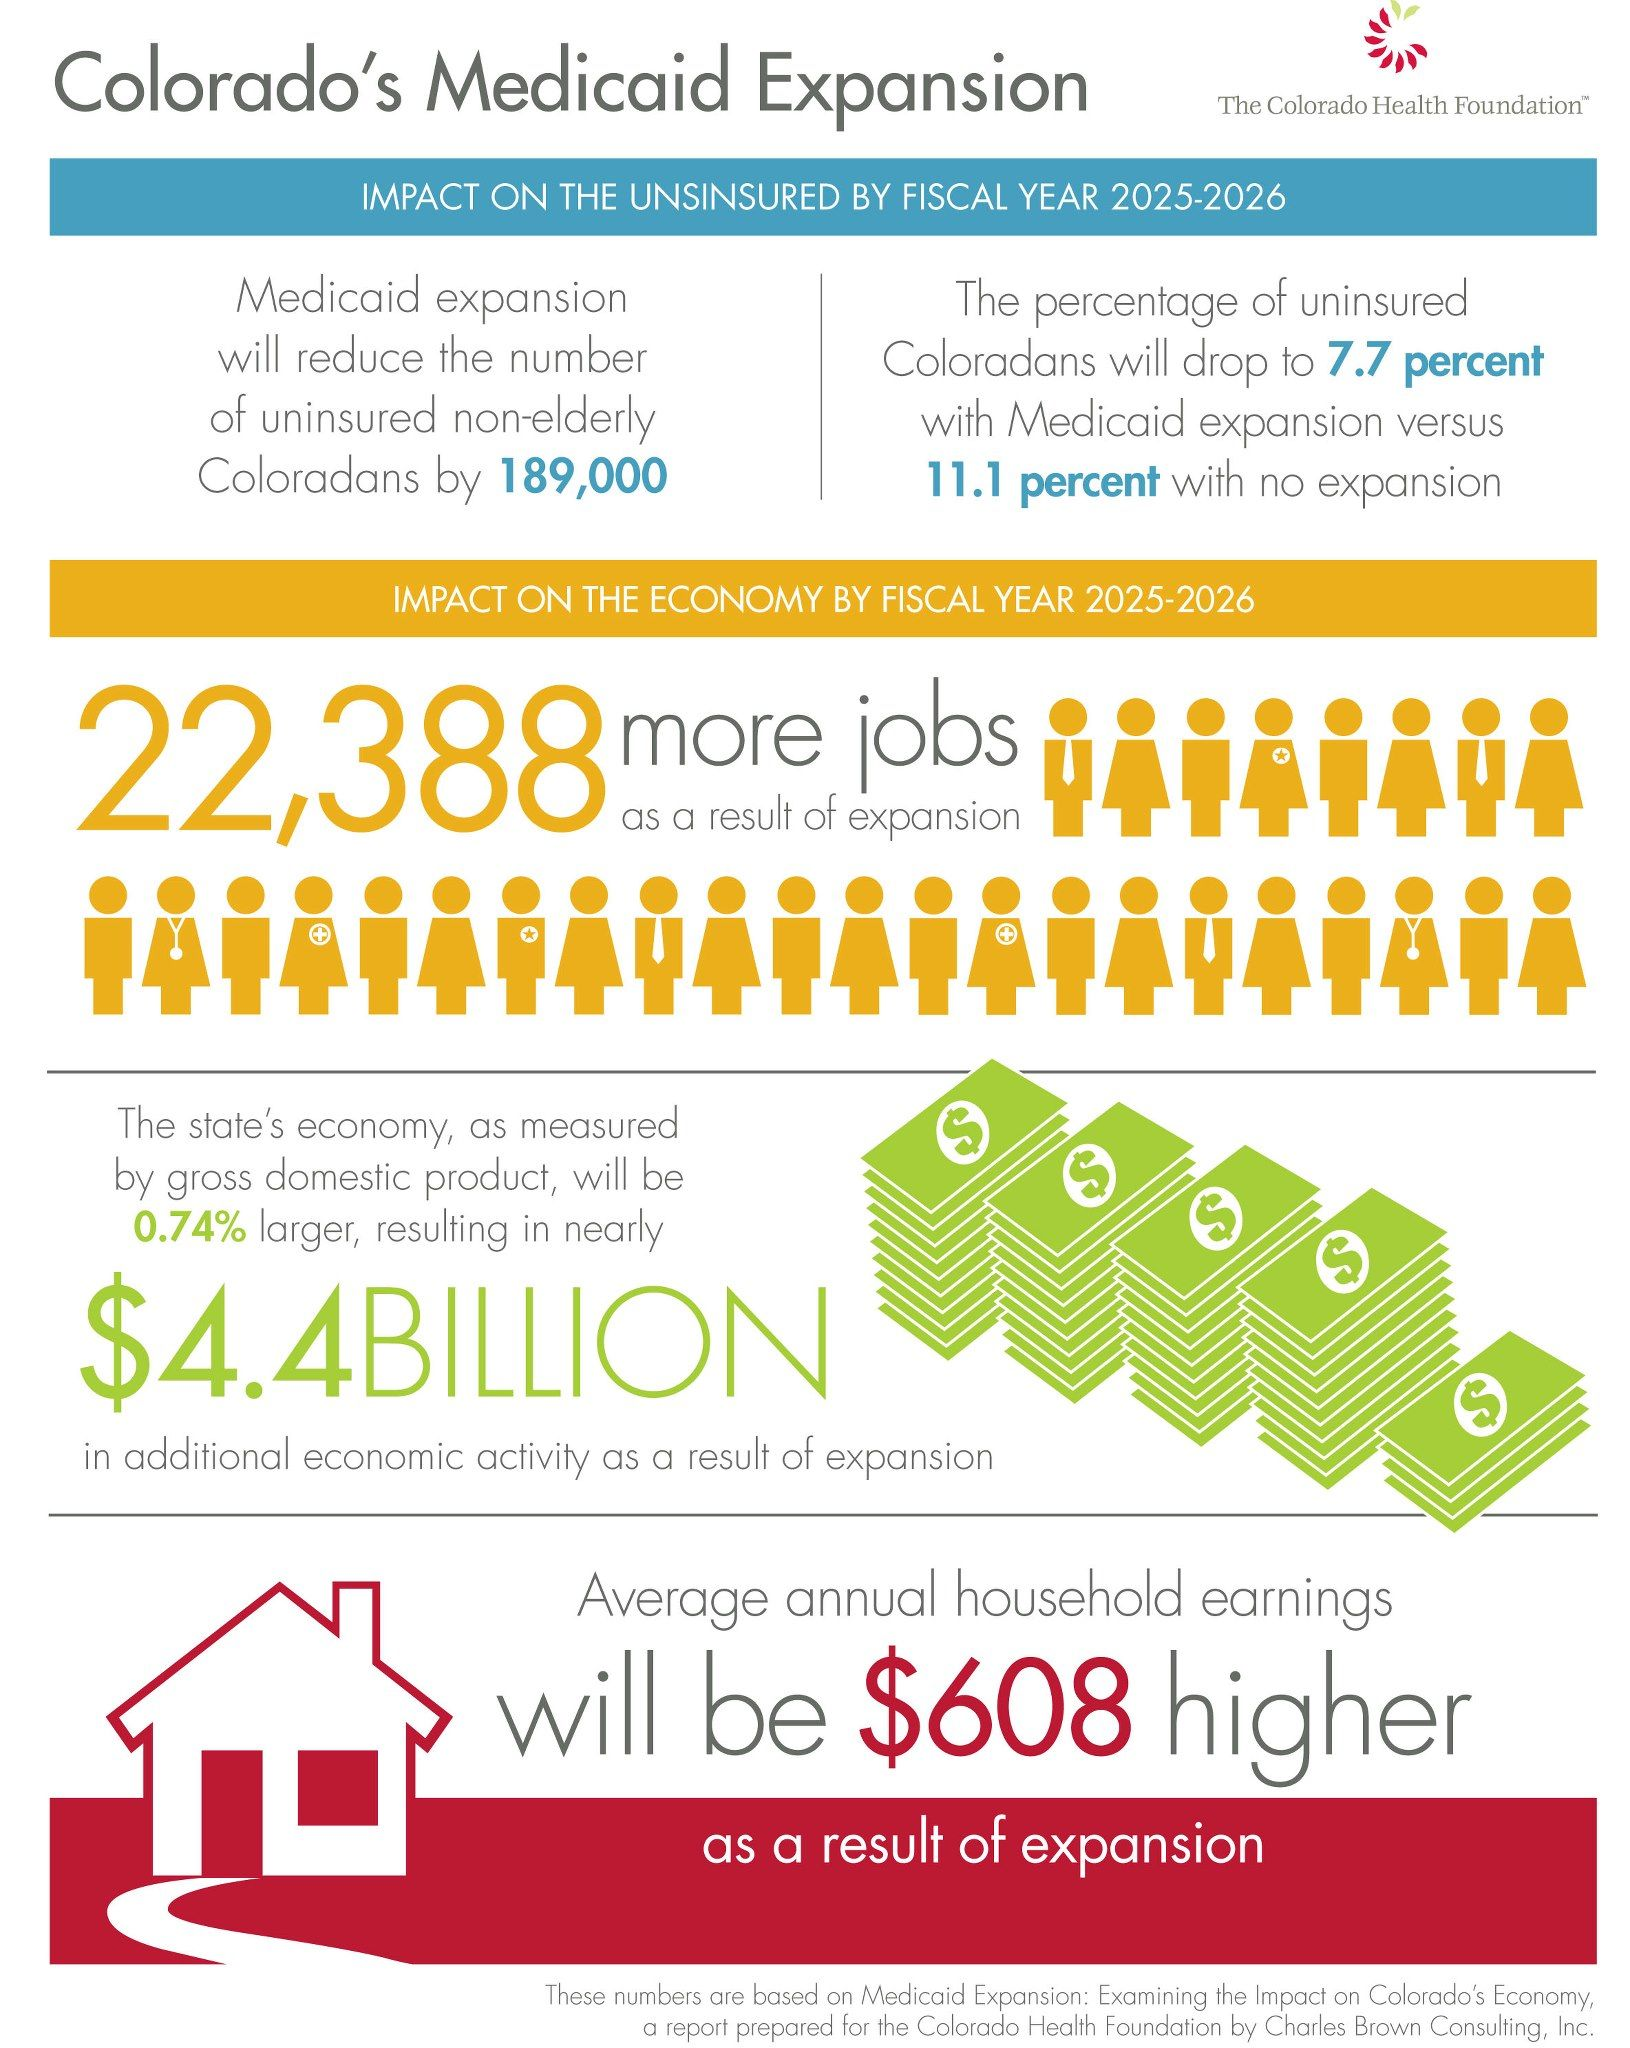 Check out the benefits to Colorado for expanding Medicaid